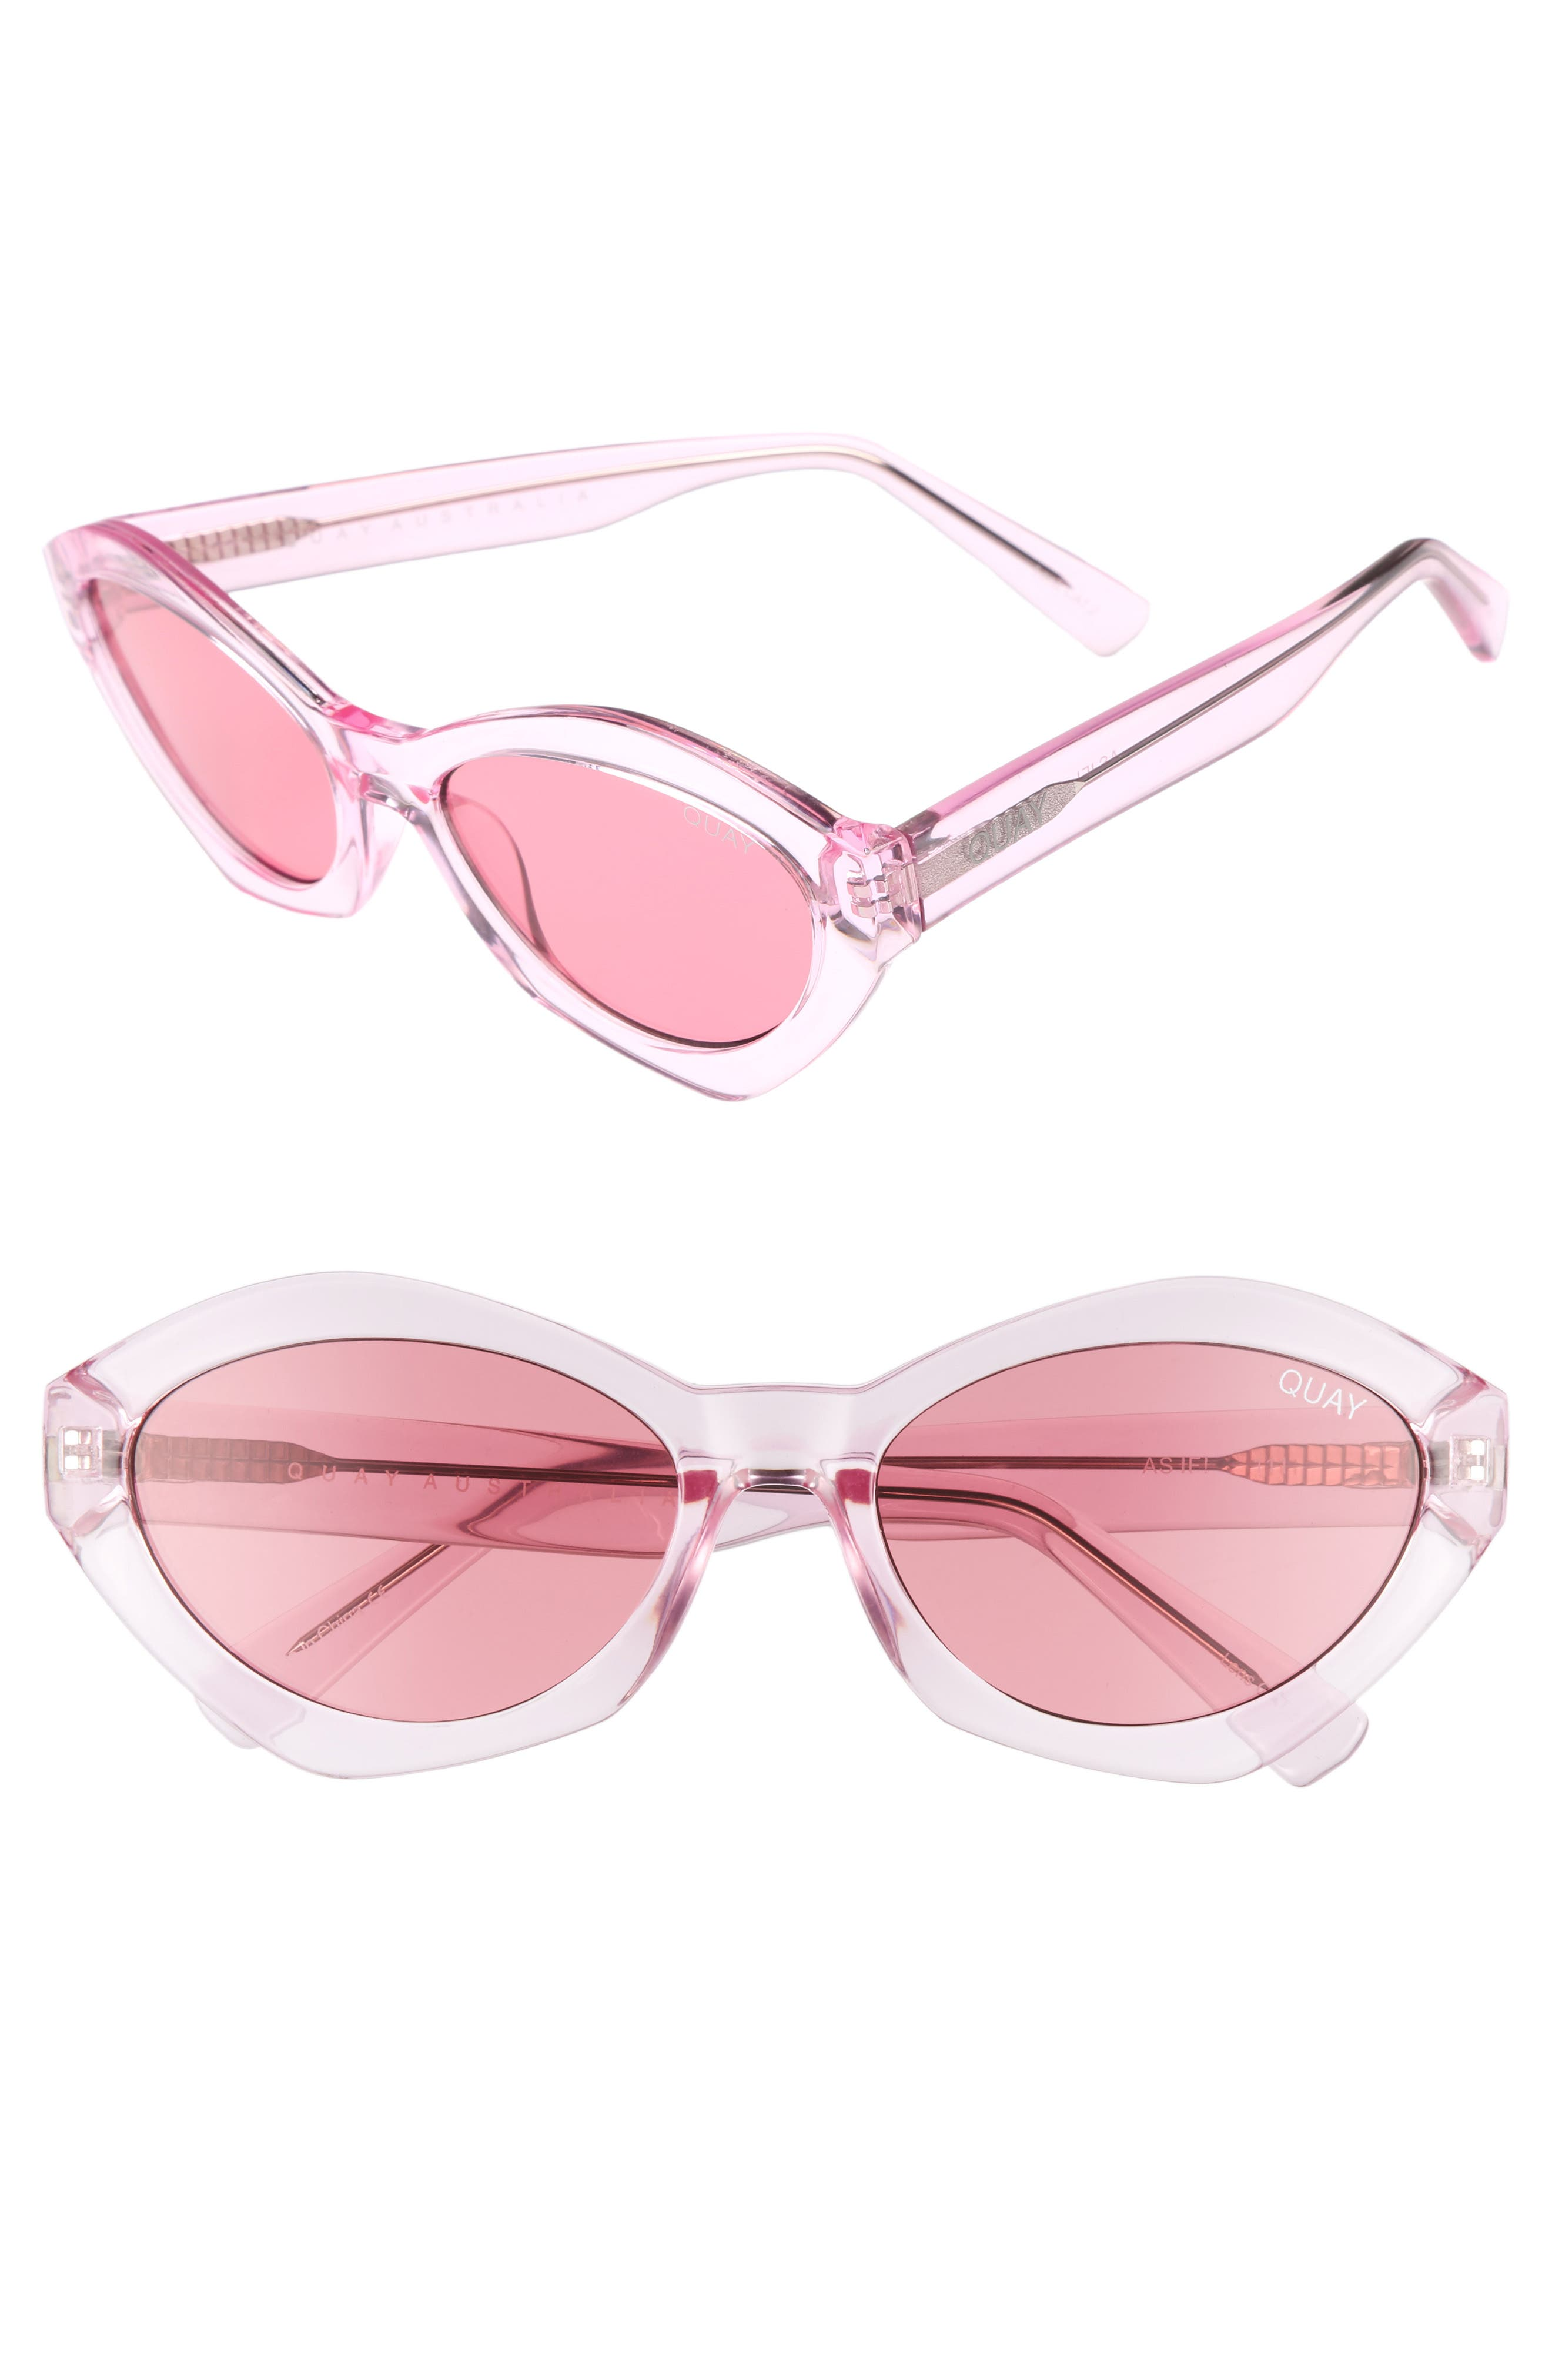 54mm As If Oval Sunglasses,                         Main,                         color, PINK/ PINK